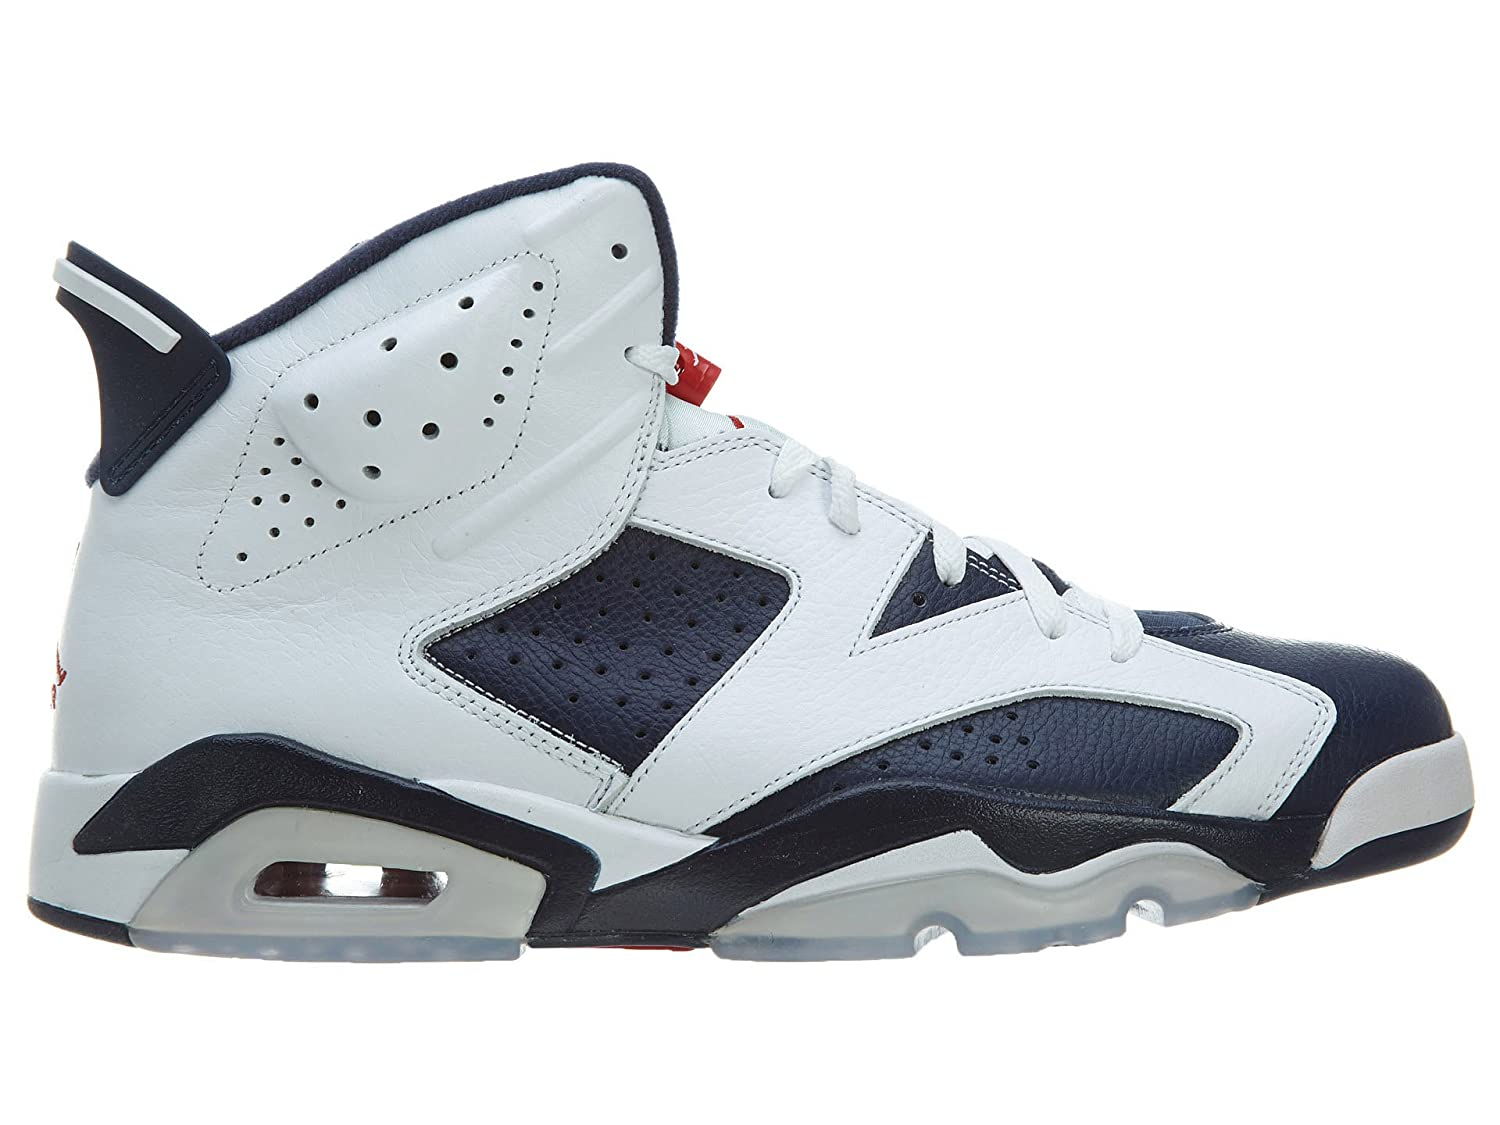 new product 69161 4b6d2 Amazon.com   Nike Mens Air Jordan 6 Retro Olympic White Midnight Navy-Varsity  Red Leather Basketball Shoes Size 9.5   Fashion Sneakers